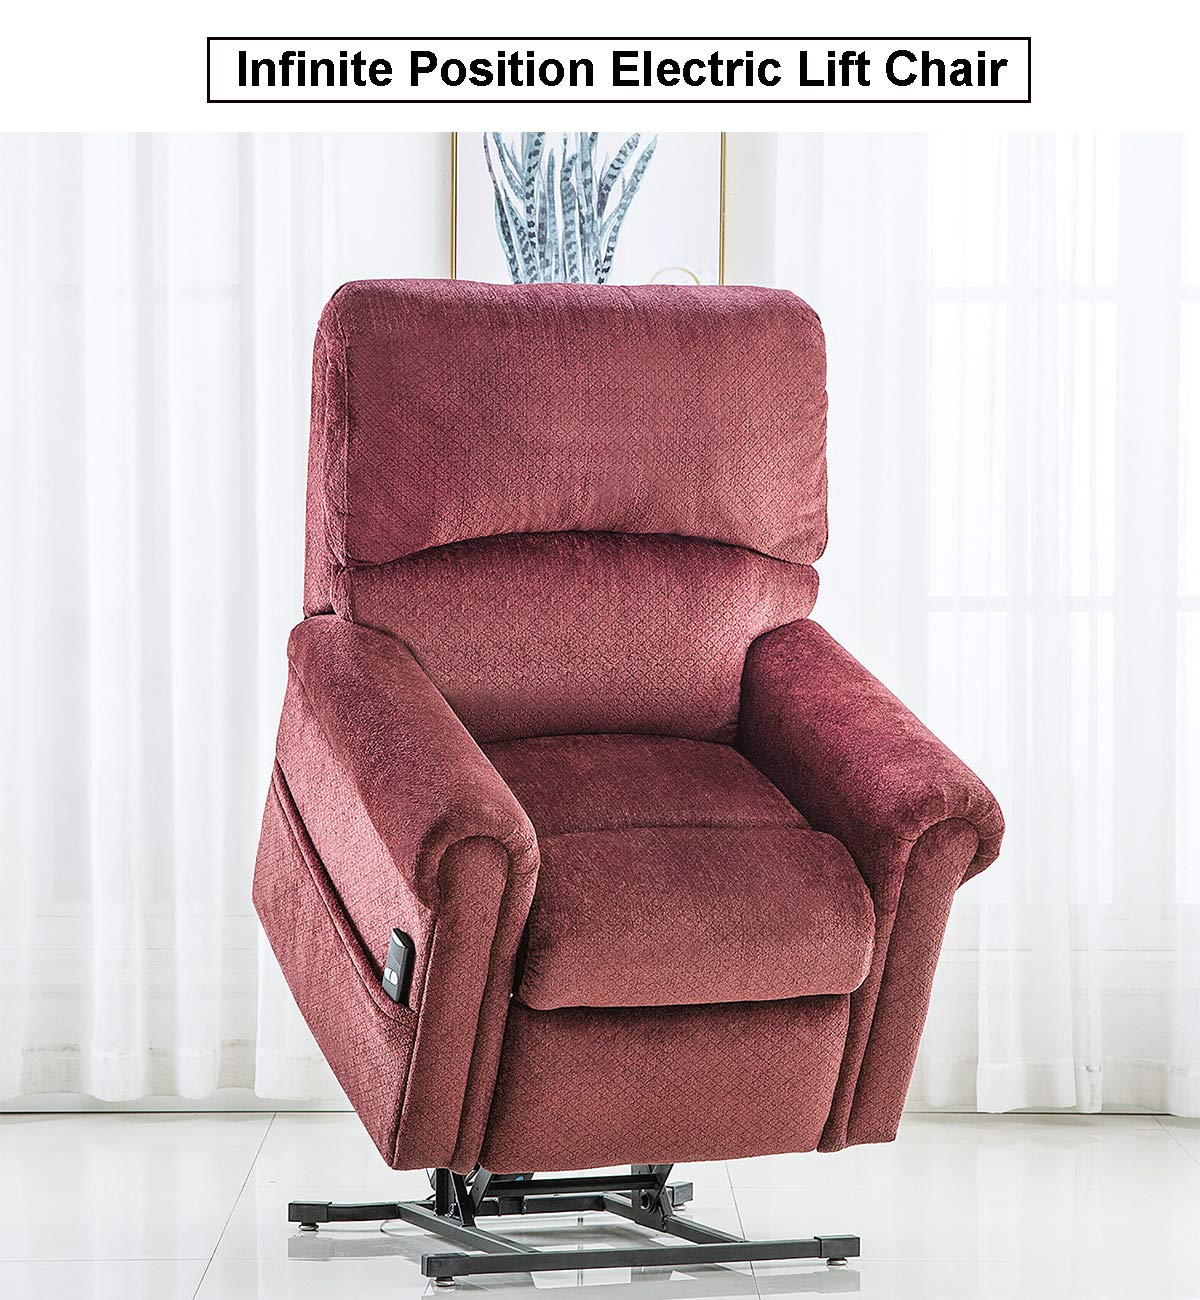 Electric Lift Chair 380 LB Heavy Duty,JULYFOX Infinite Position Oversize Lift Recliner Sofa Lifts You Up W 2 Button Remote Upholstered Tufted Velvet Stand Up Lift Chair Living Room Chair Wine Red